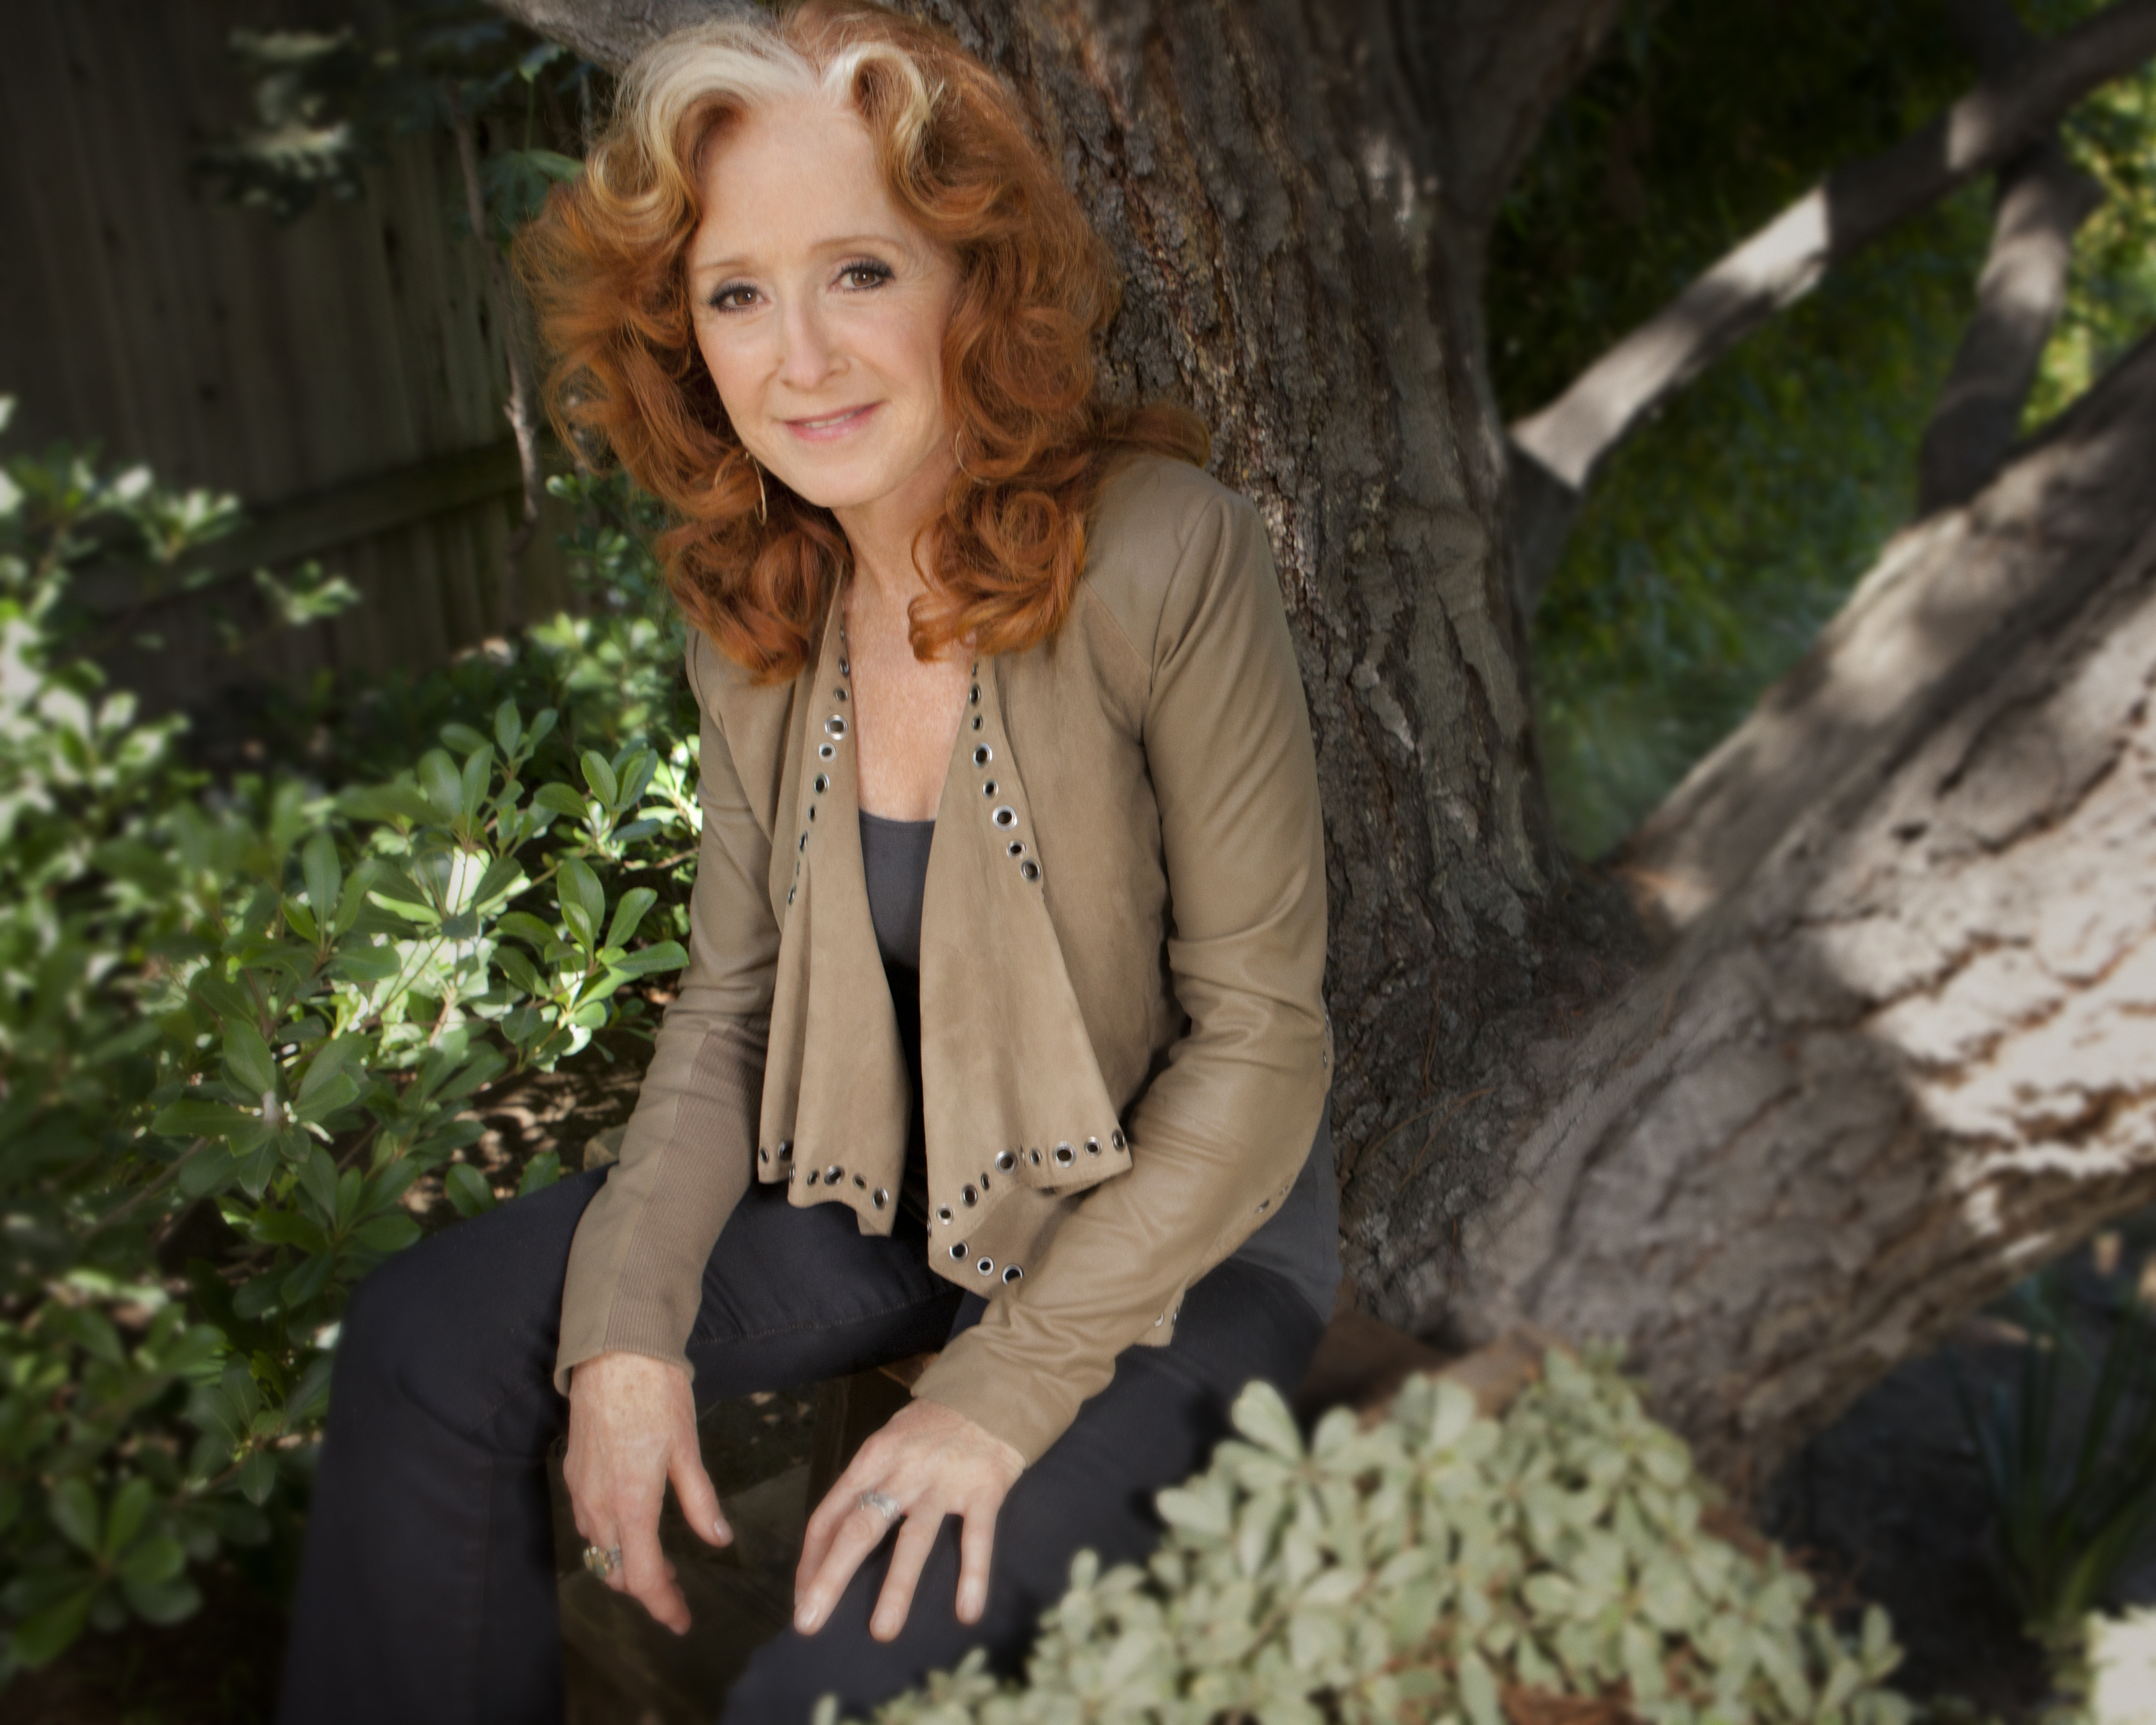 Ten-time Grammy winner Bonnie Raitt will visit Maui on her Dig in Deep tour for a concert at the Maui Arts & Cultural Center's A&B Amphitheater & Yokouchi Pavilion Friday, March 24. Courtesy image.